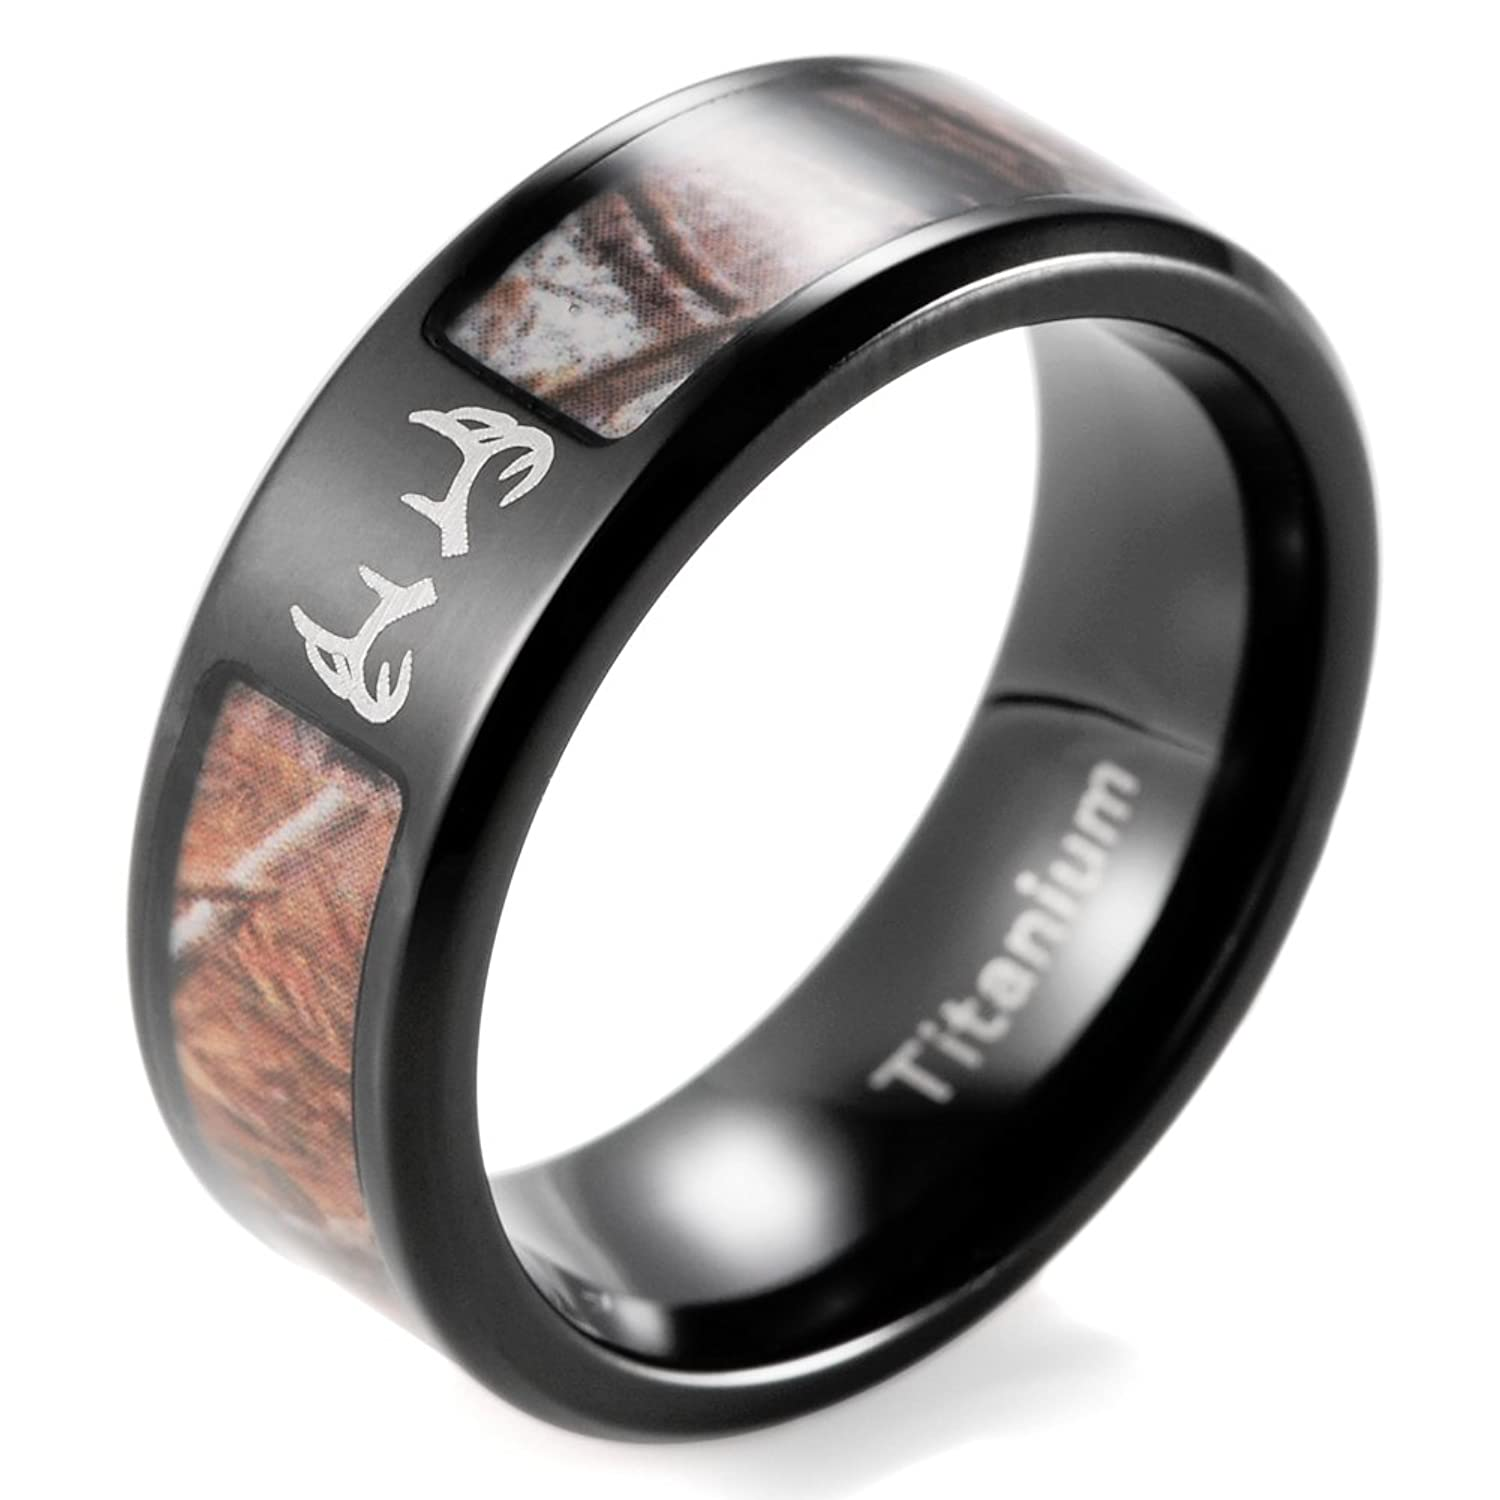 ring snow bands titanium wedding black white camouflage rings ceramic band product camo inlay